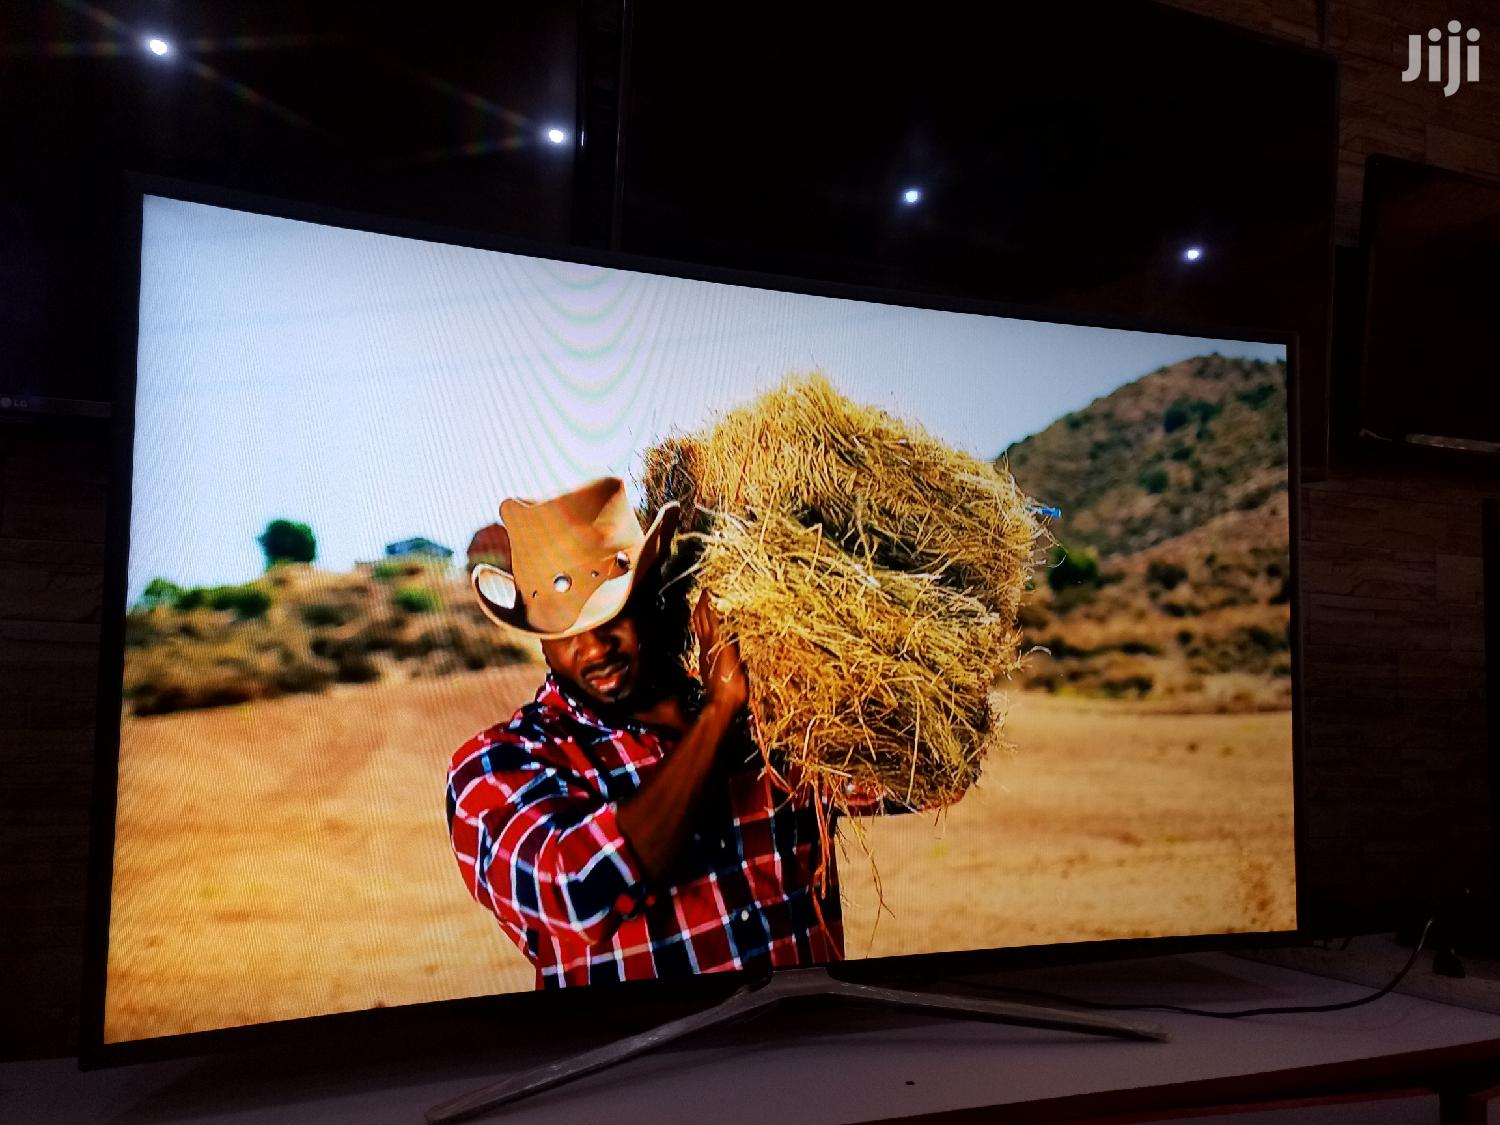 Archive: Samsung Curved Smart Uhd 4K Digital TV 55 Inches